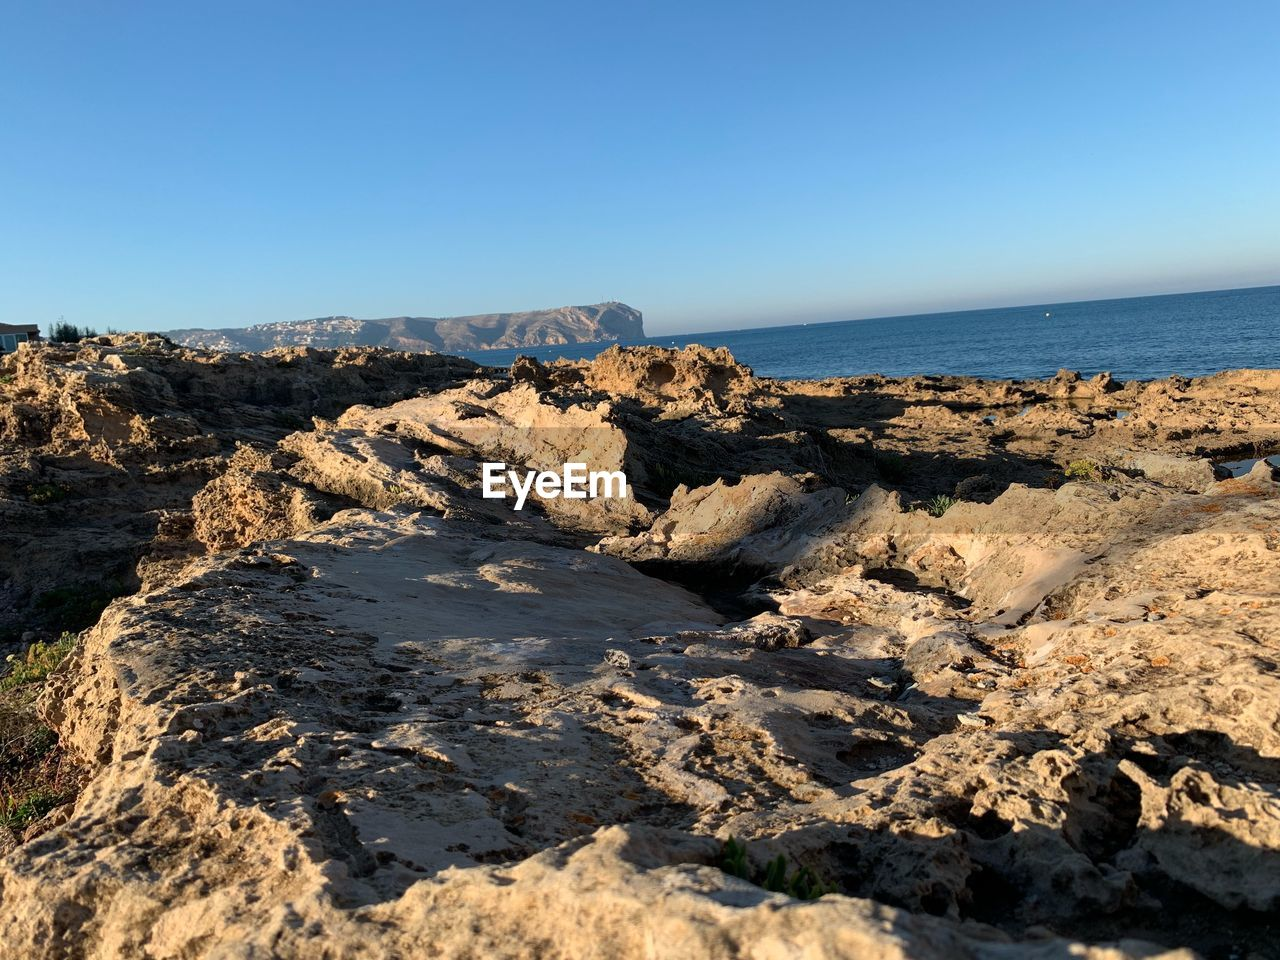 sky, sea, rock, rock - object, beauty in nature, scenics - nature, water, solid, clear sky, horizon, land, rock formation, tranquil scene, tranquility, nature, horizon over water, beach, copy space, day, no people, eroded, rocky coastline